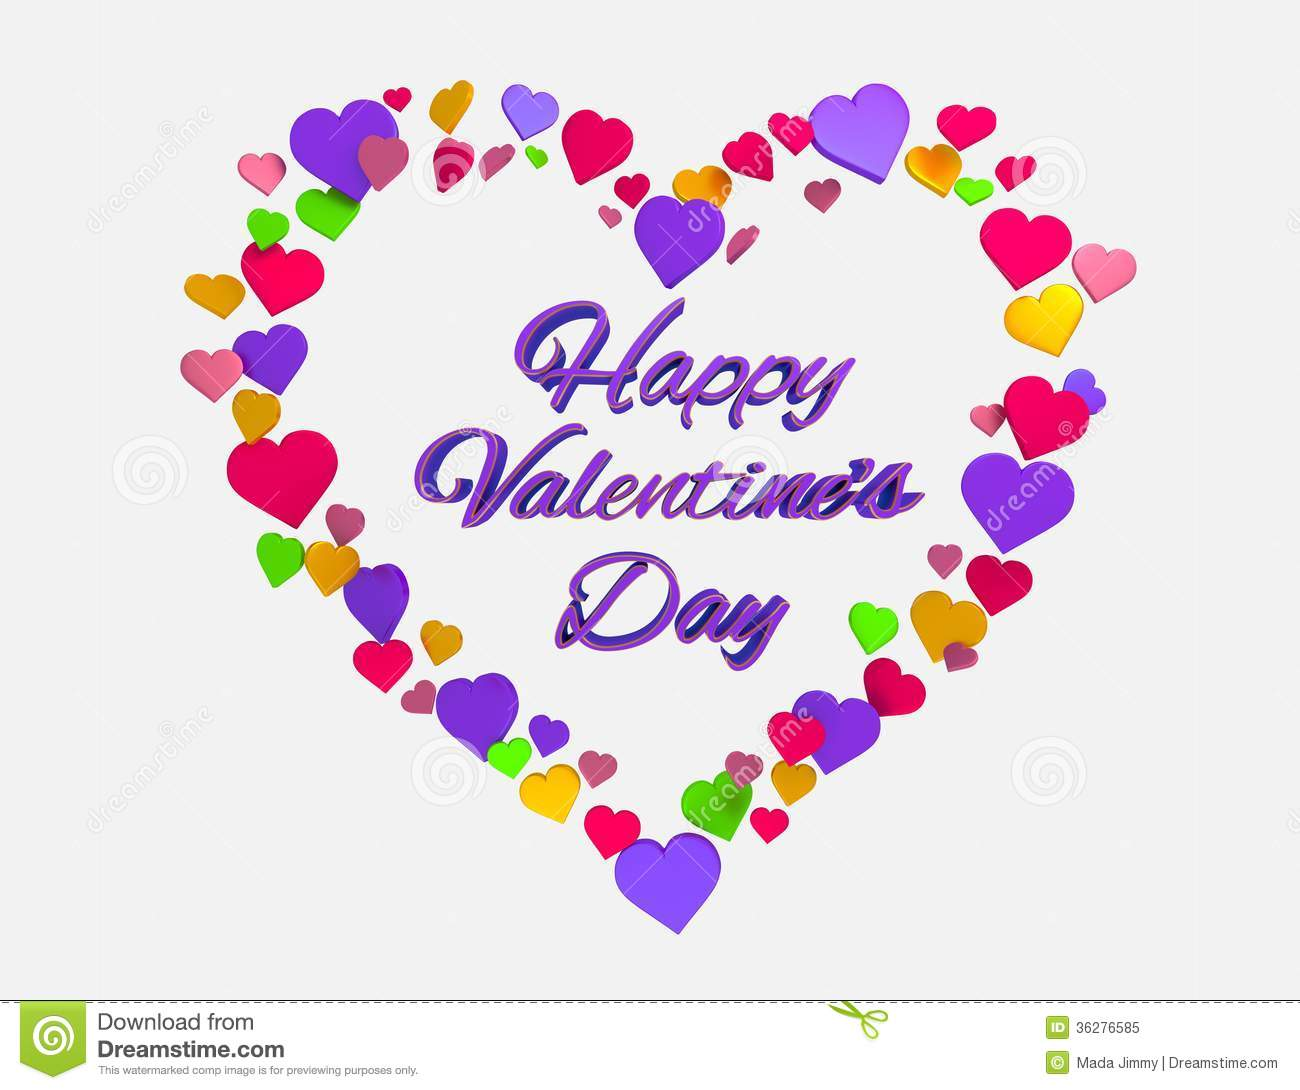 Happy Valentines Day Heart 3d Stock Illustration - Image: 36276585